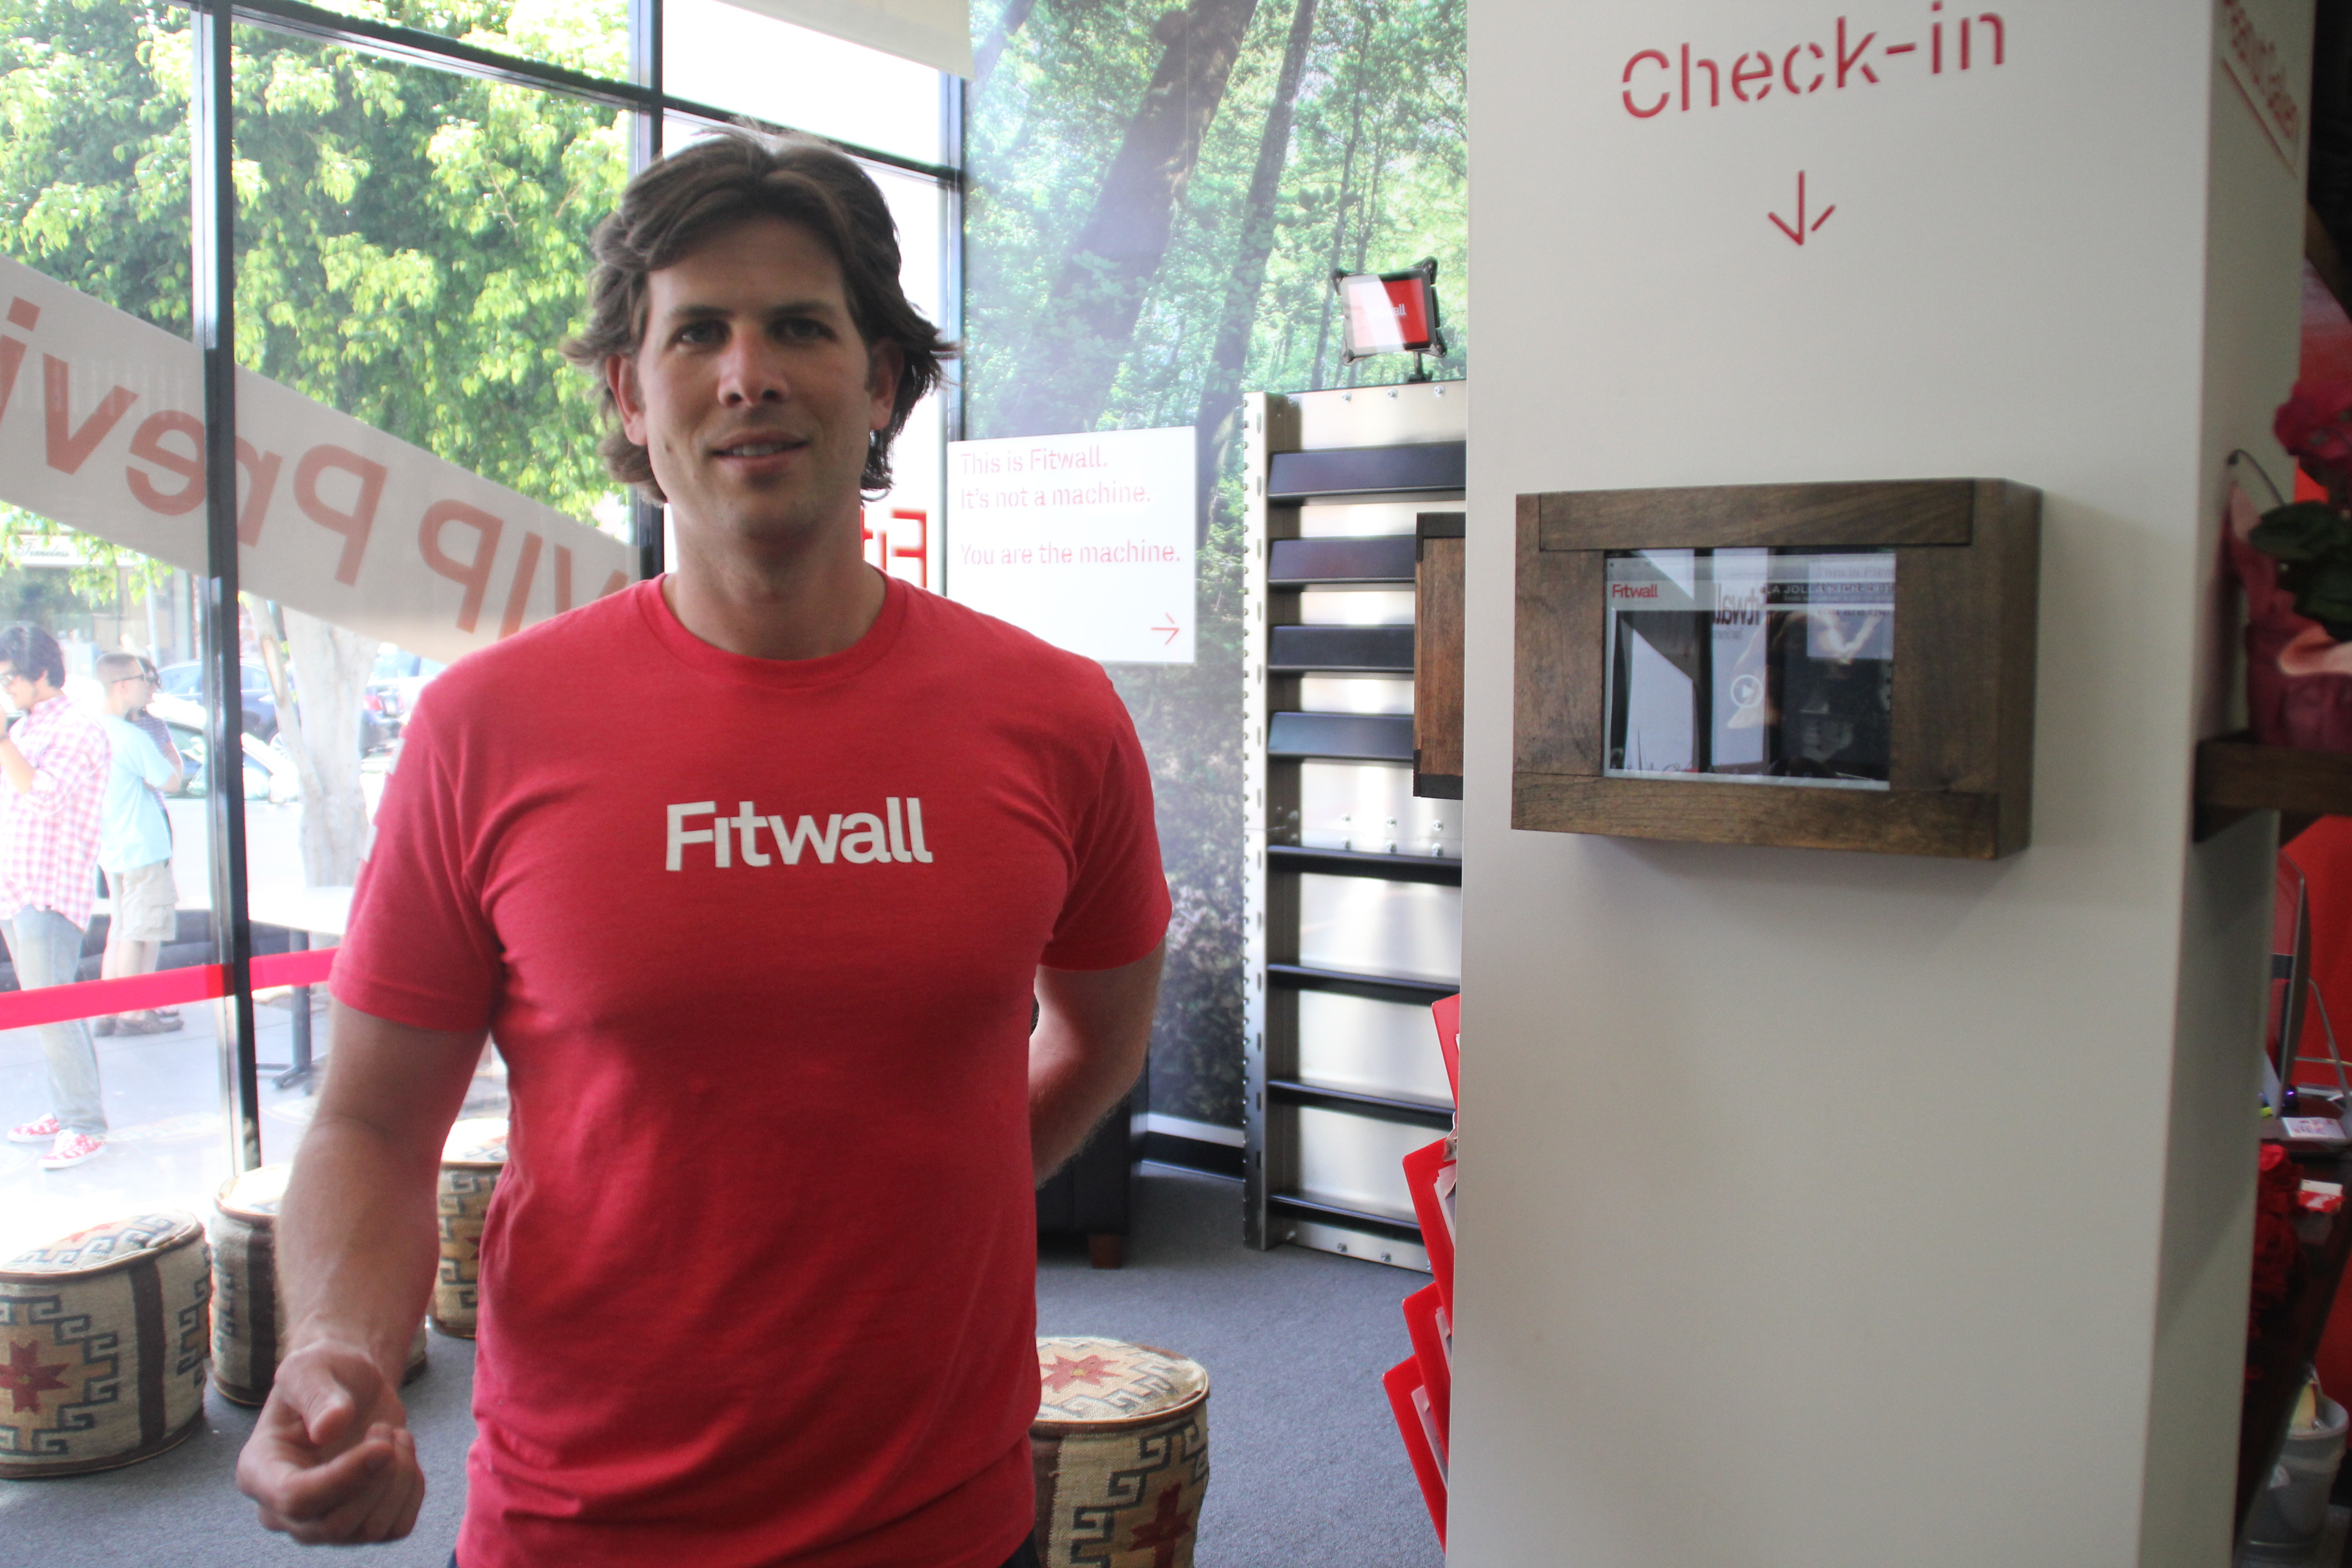 Welcome to Fitwall